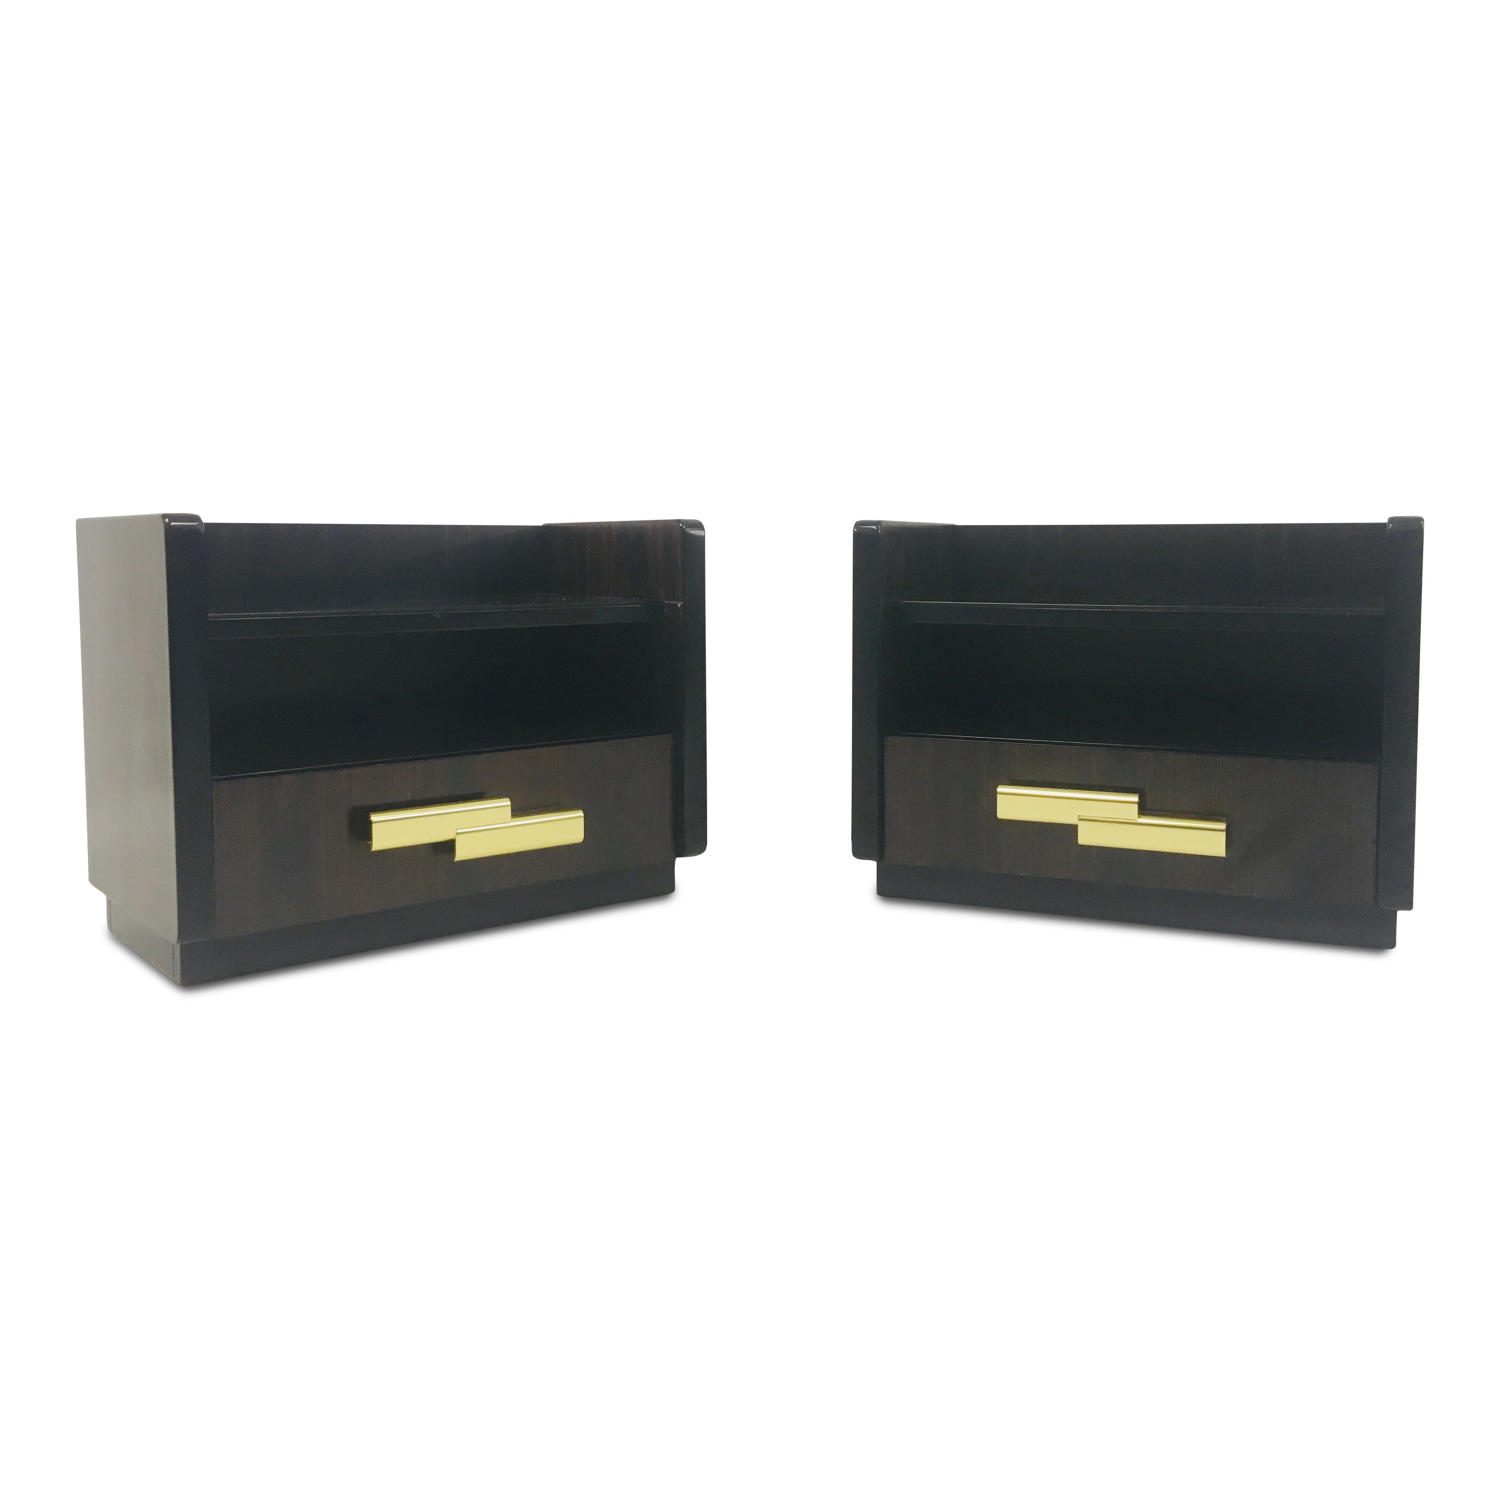 Pair of 1970s bedside tables by Luciano Frigerio